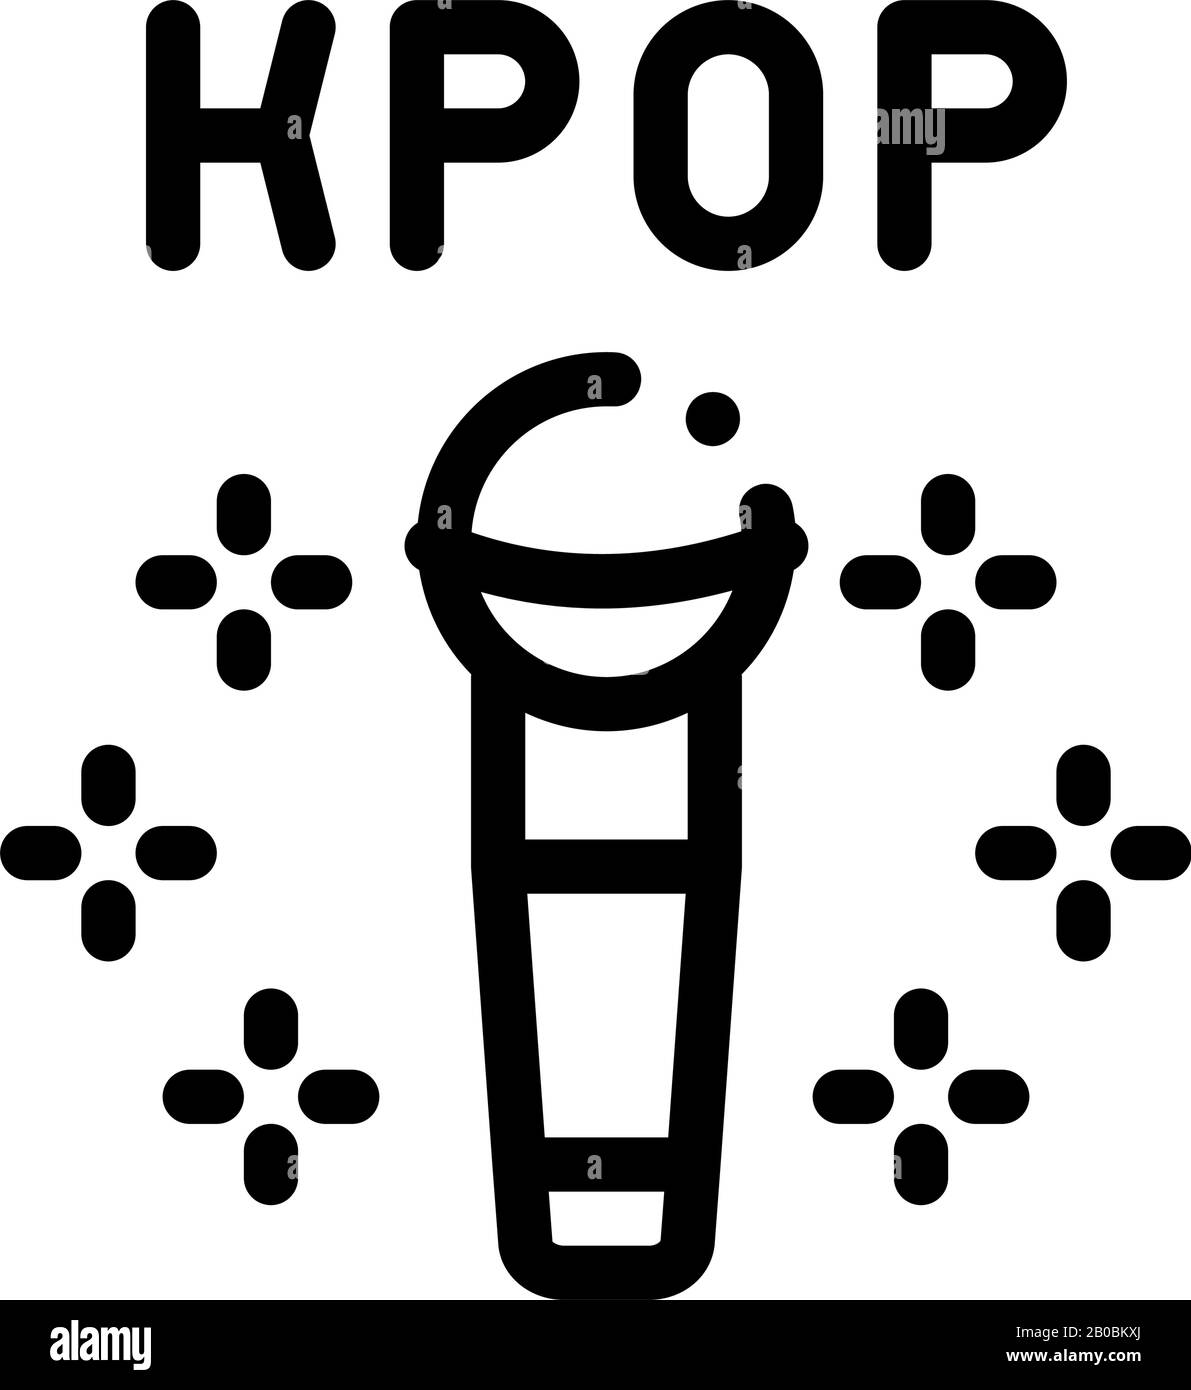 Kpop Microphone Icon Vector Outline Illustration Stock Vector Image Art Alamy